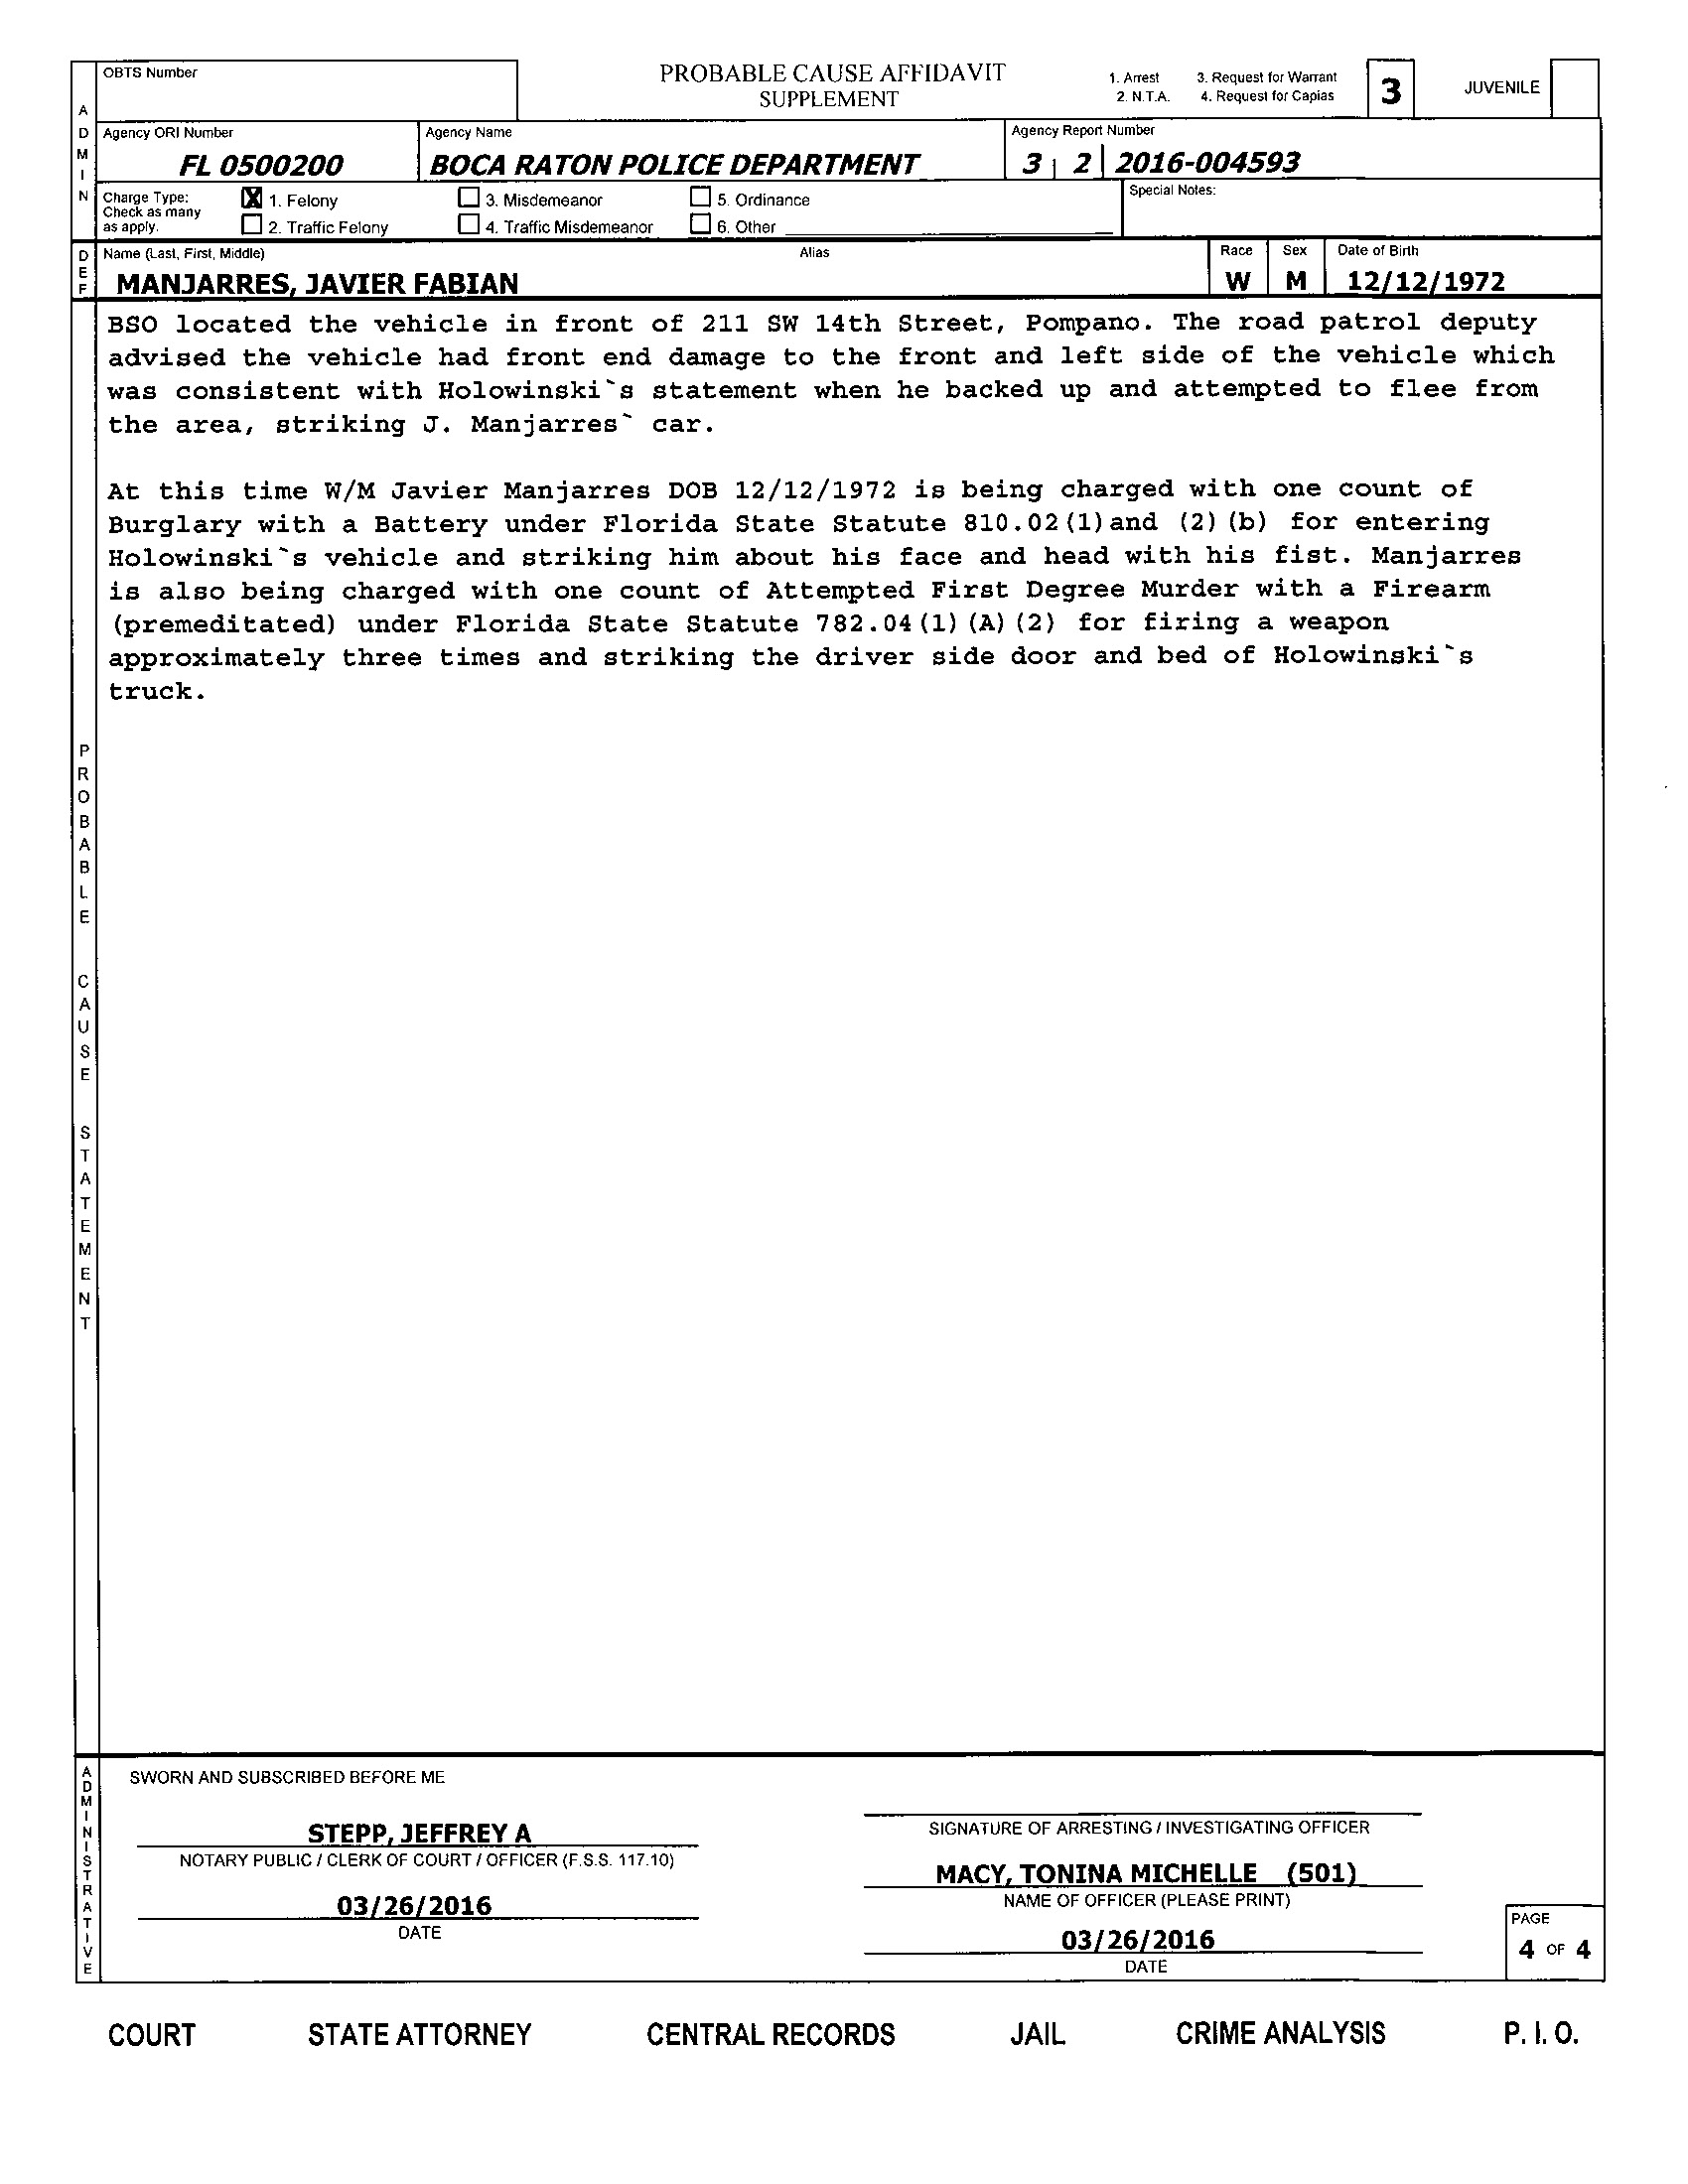 MANJAREES police report_Page_4